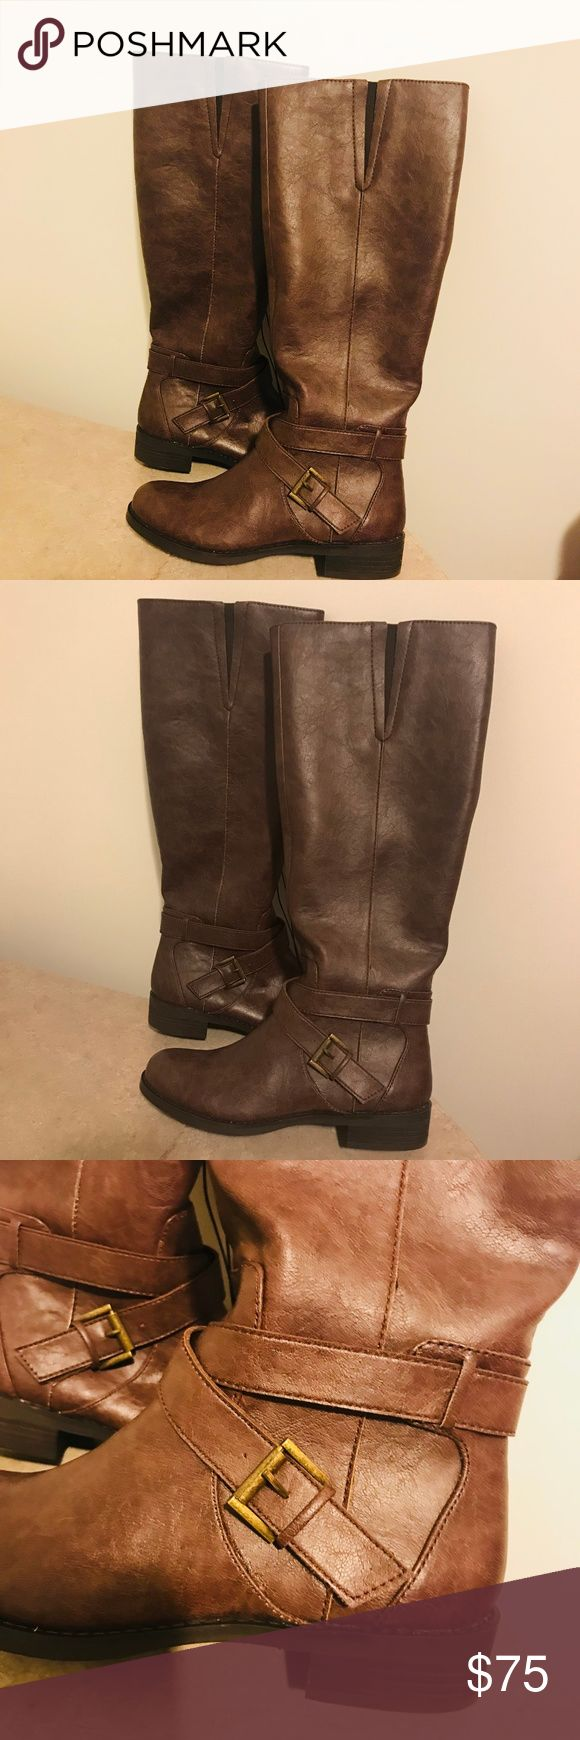 Kenneth Cole Reaction Women's Riding Boots Brown New in Box. Knee high boots. Perfect condition Kenneth Cole Reaction Shoes Winter & Rain Boots